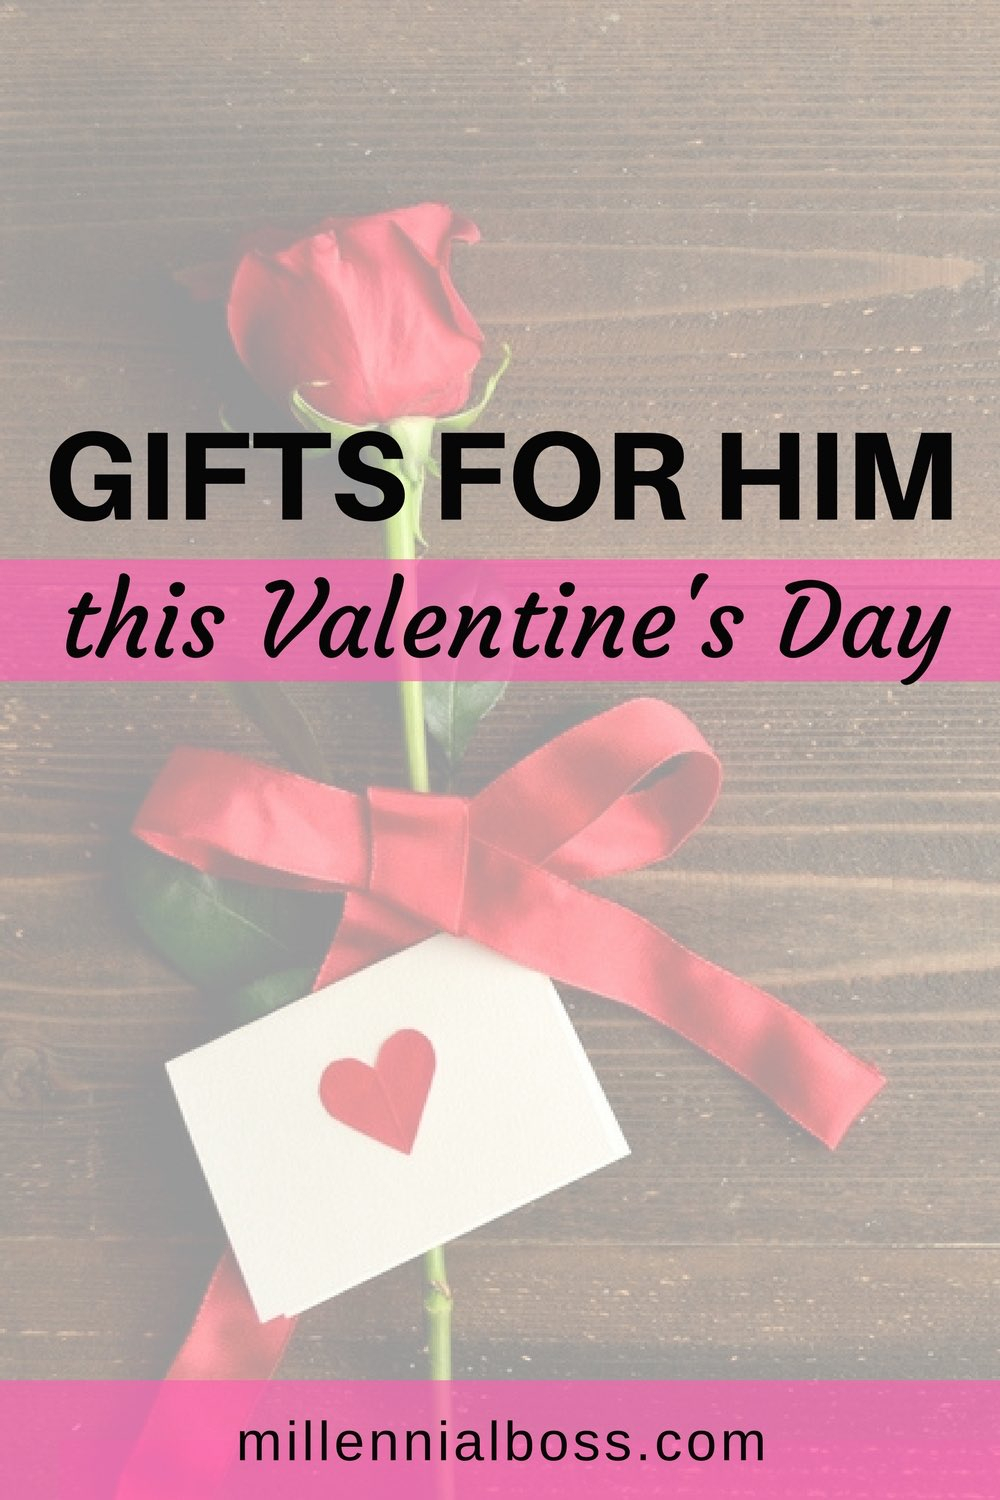 10 Wonderful Unique Ideas For Valentines Day For Him top 25 valentines day gifts for him millennial boss 2